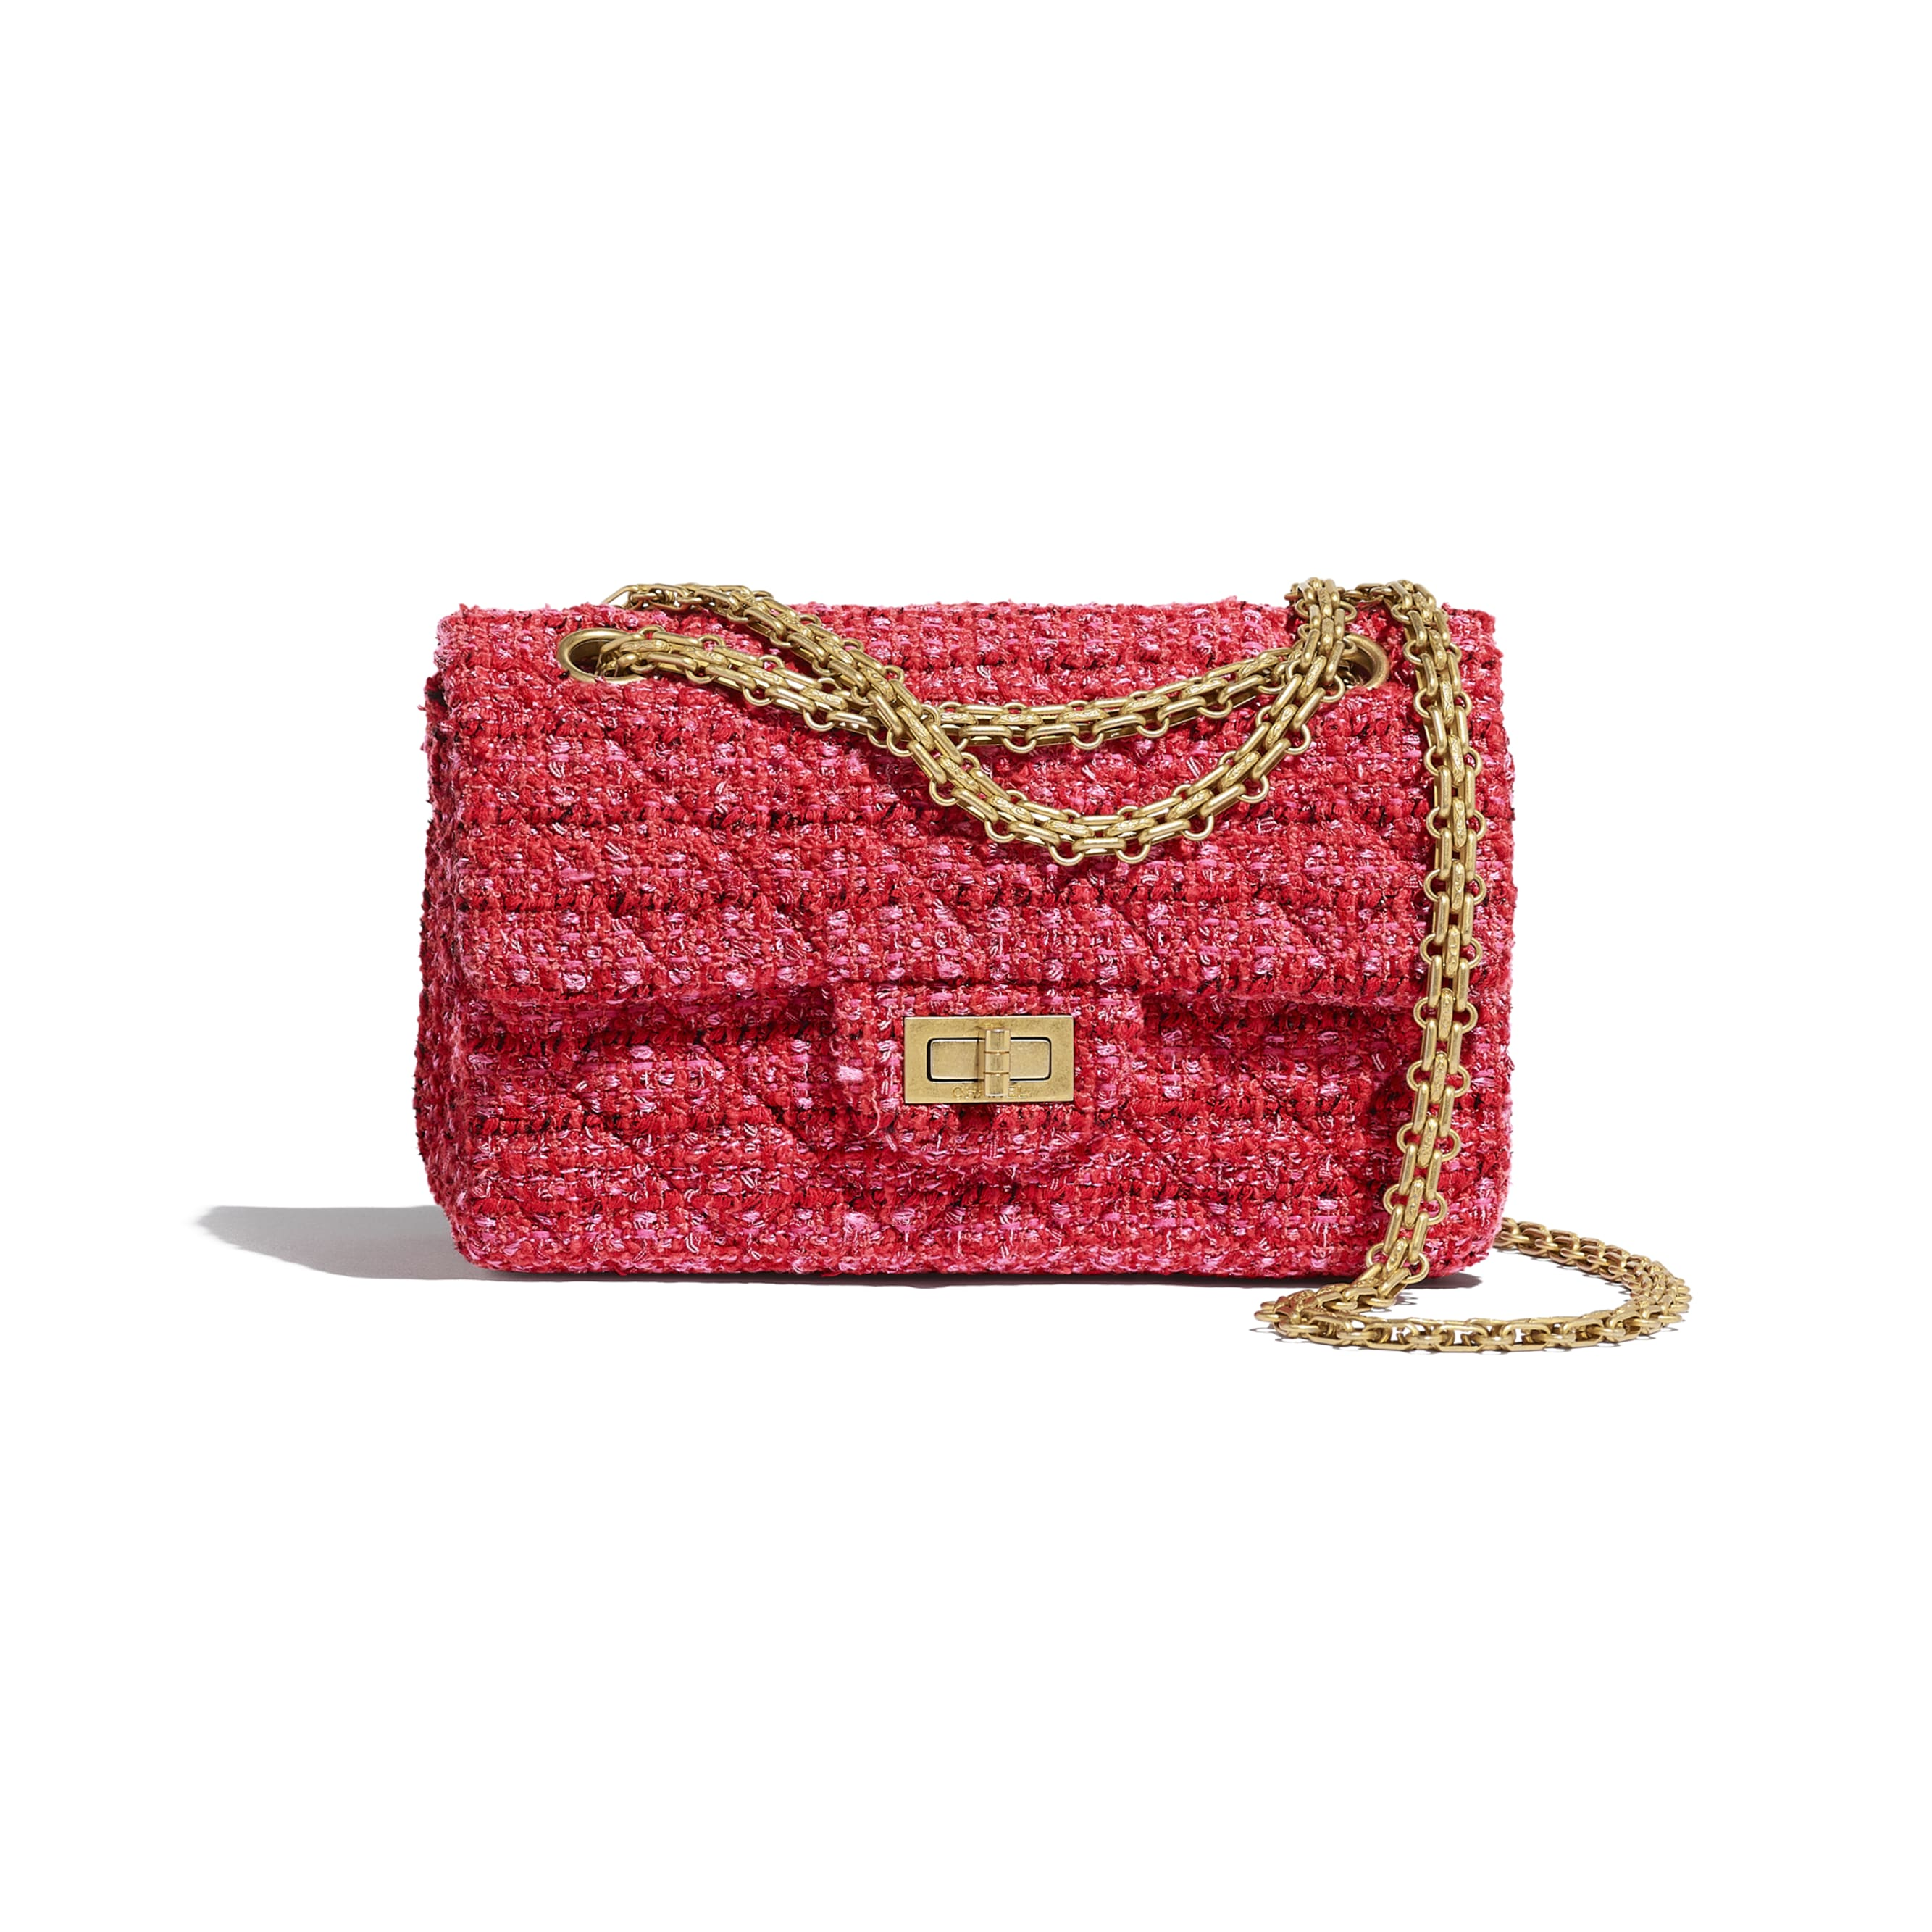 Mini 2.55 Handbag - Red, Ecru & Black - Tweed & Gold Metal - CHANEL - Default view - see standard sized version